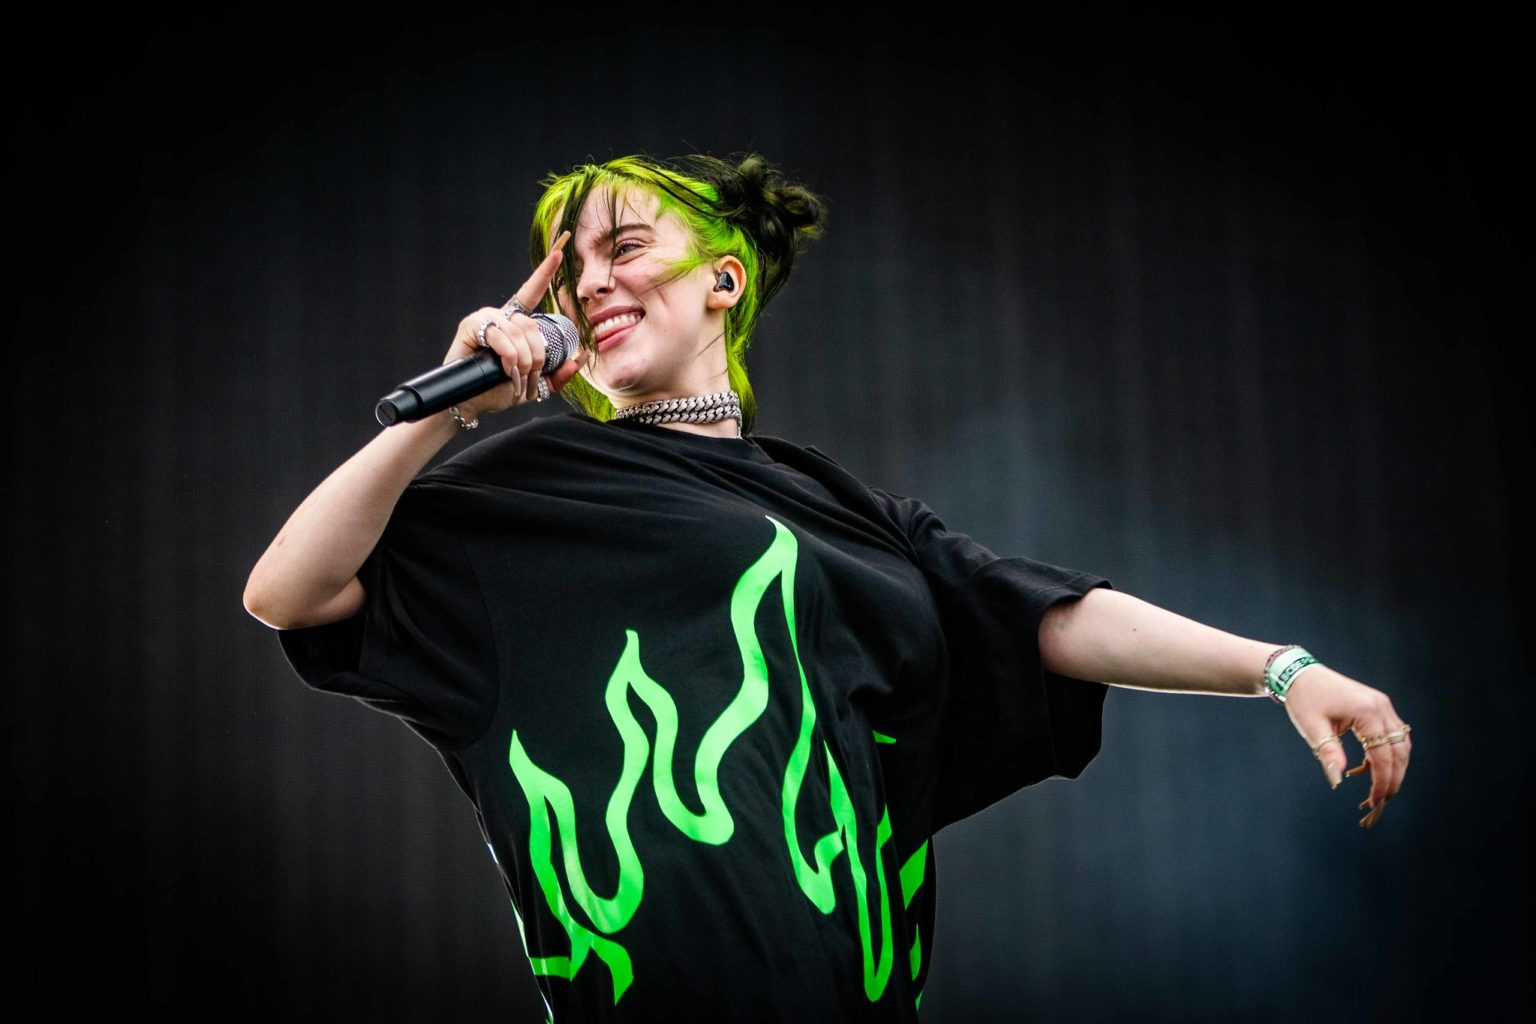 Billie Eilish and her father kick off a new radio show called